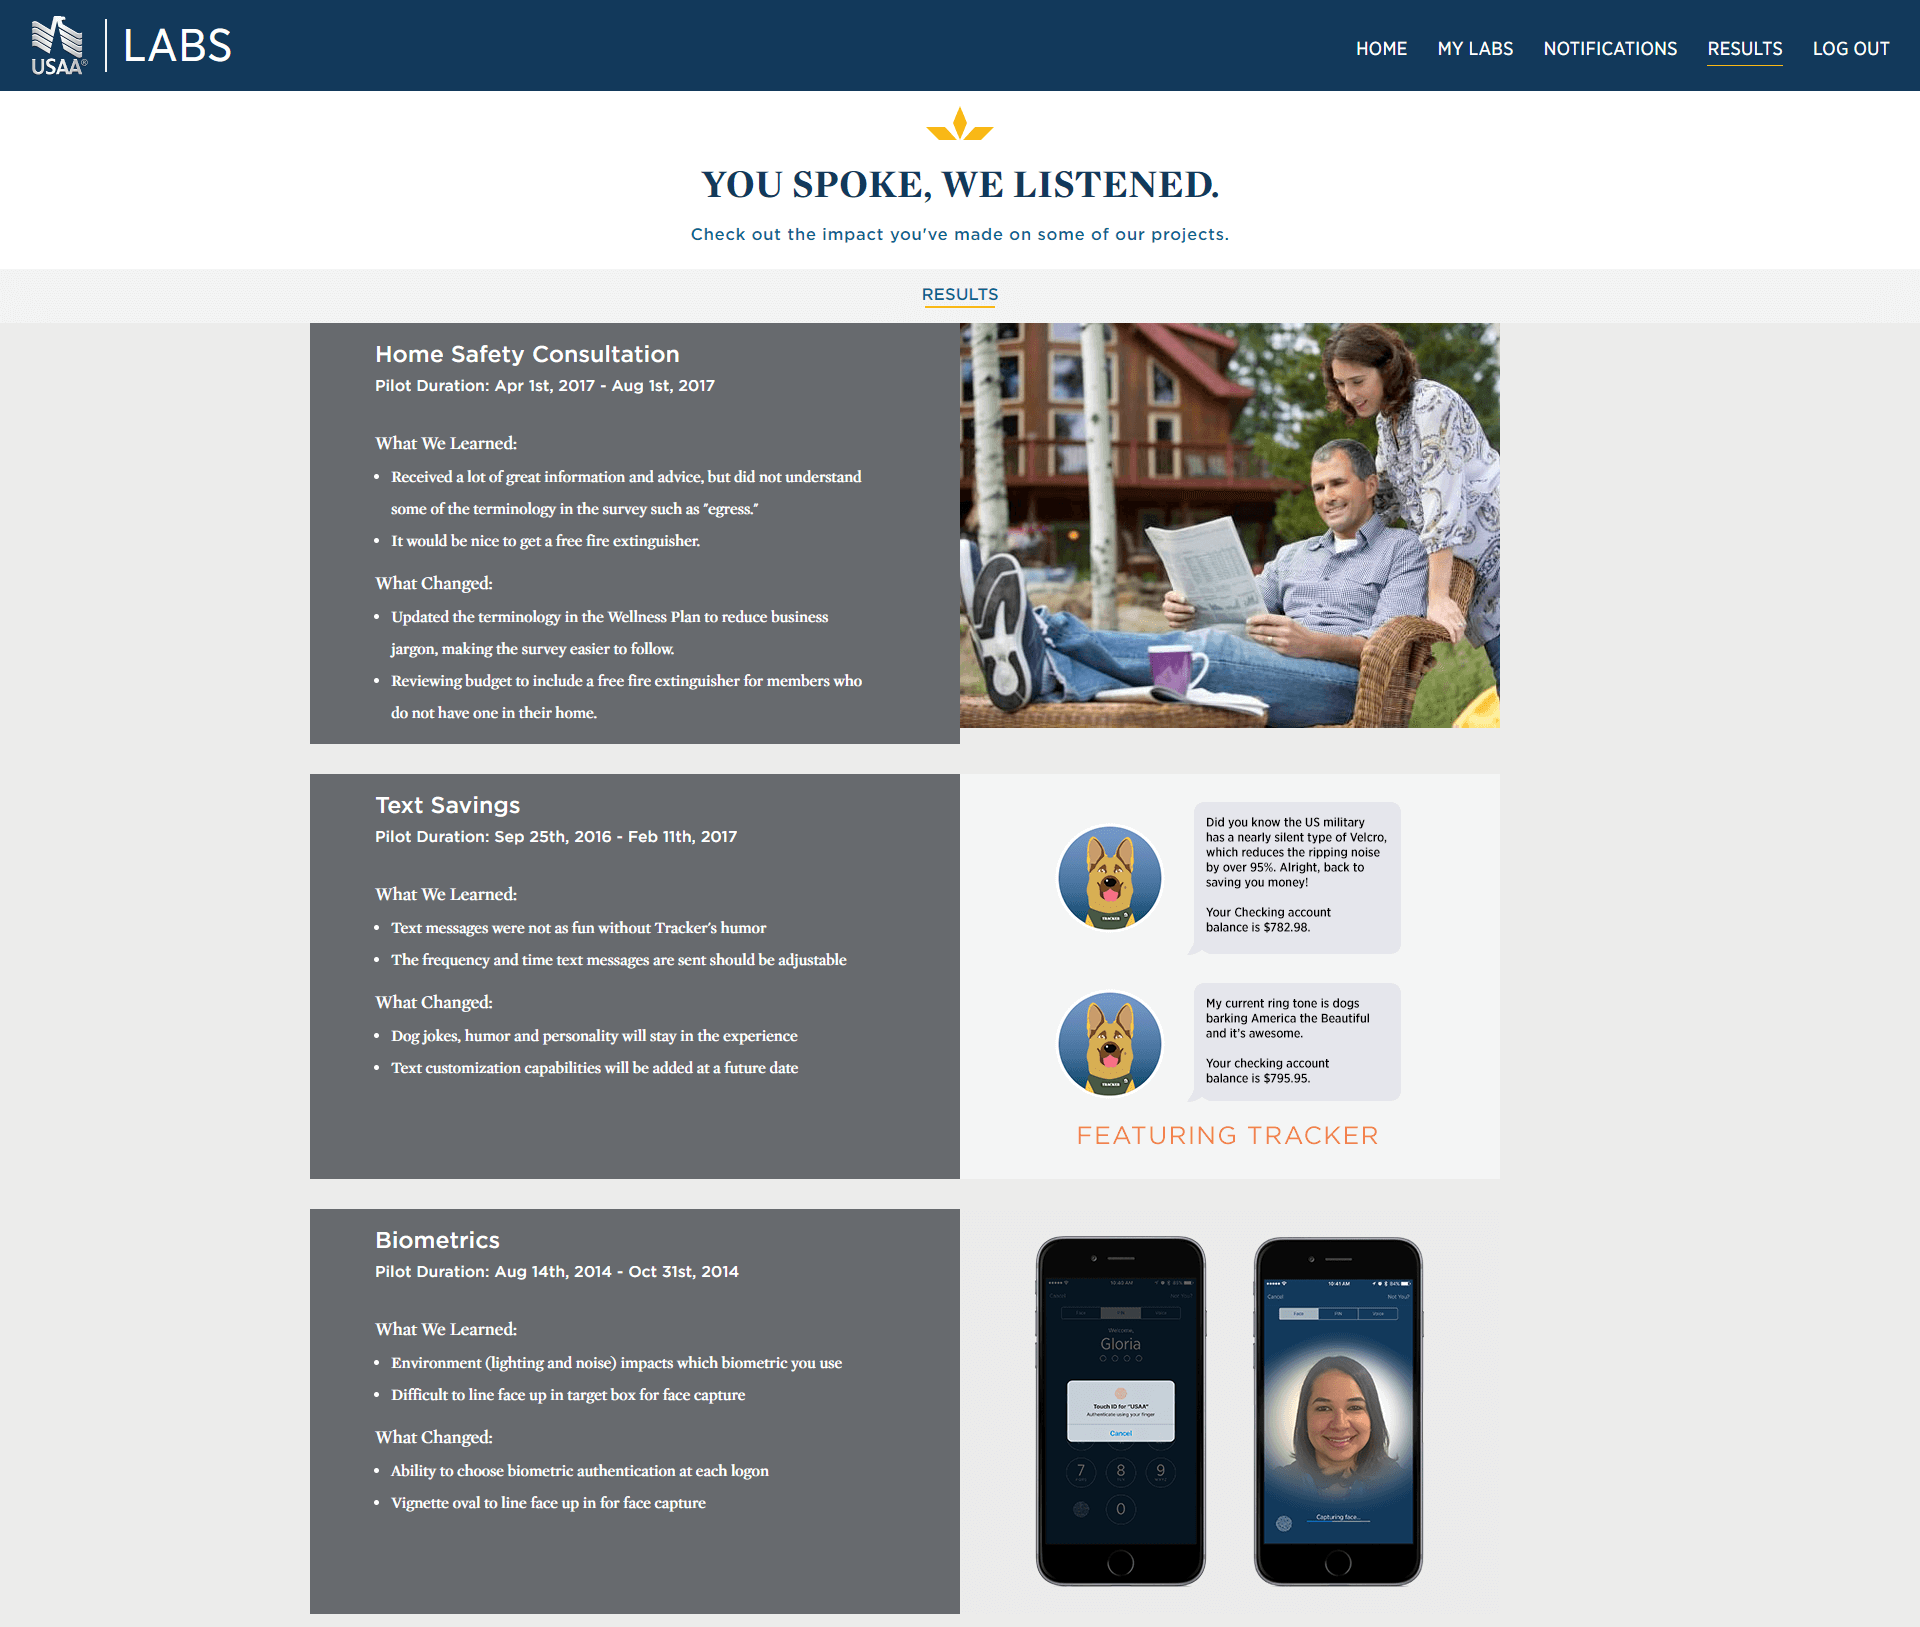 usaa labs is crowdsourcing innovation  but not